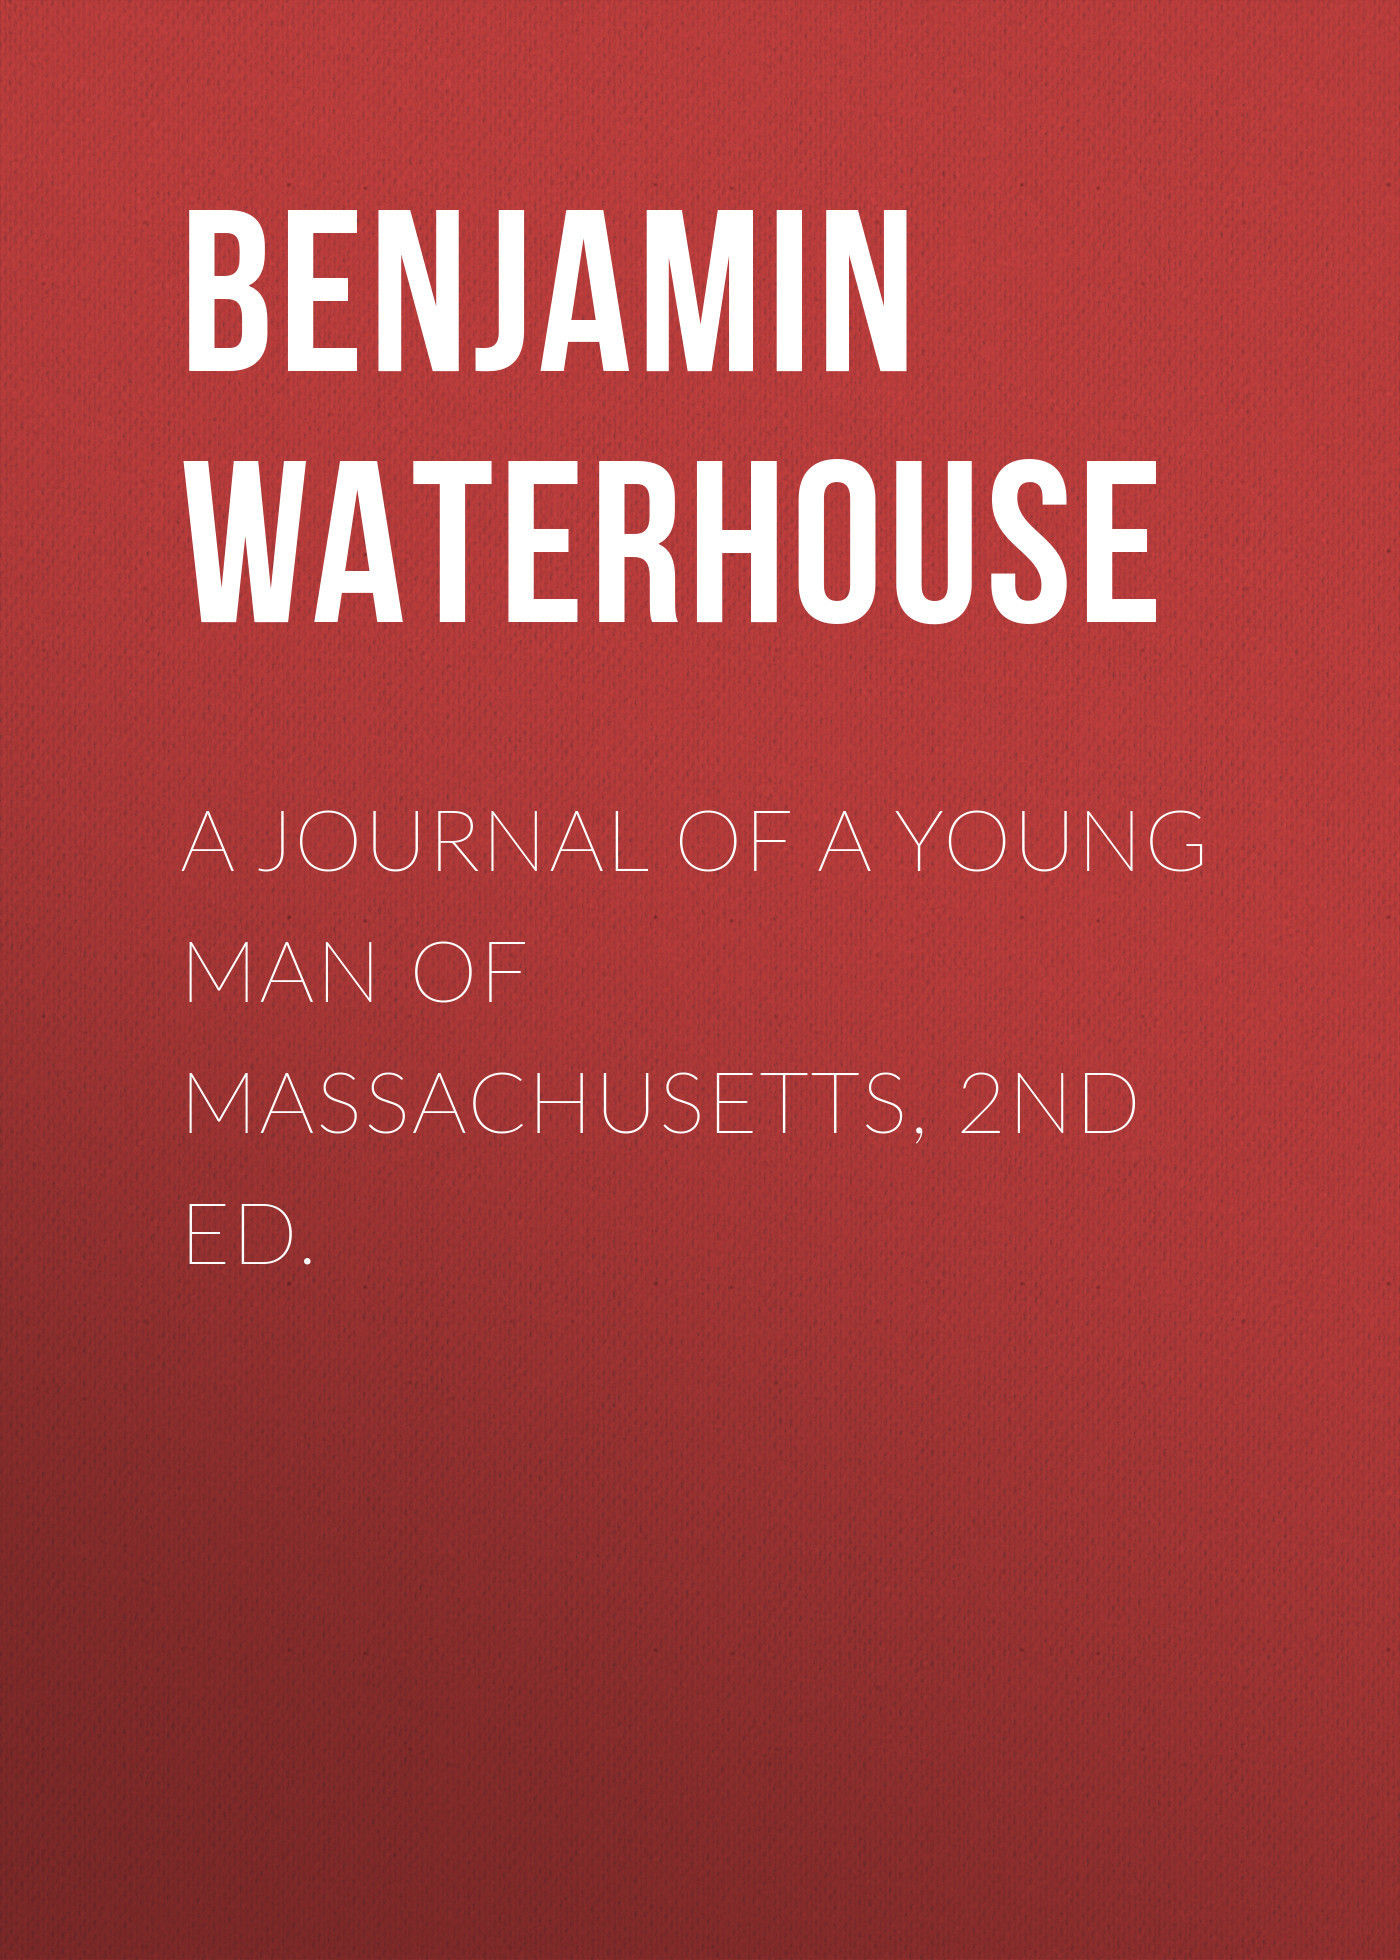 Benjamin Waterhouse A Journal of a Young Man of Massachusetts, 2nd ed. davis acoustics twx 1 шт